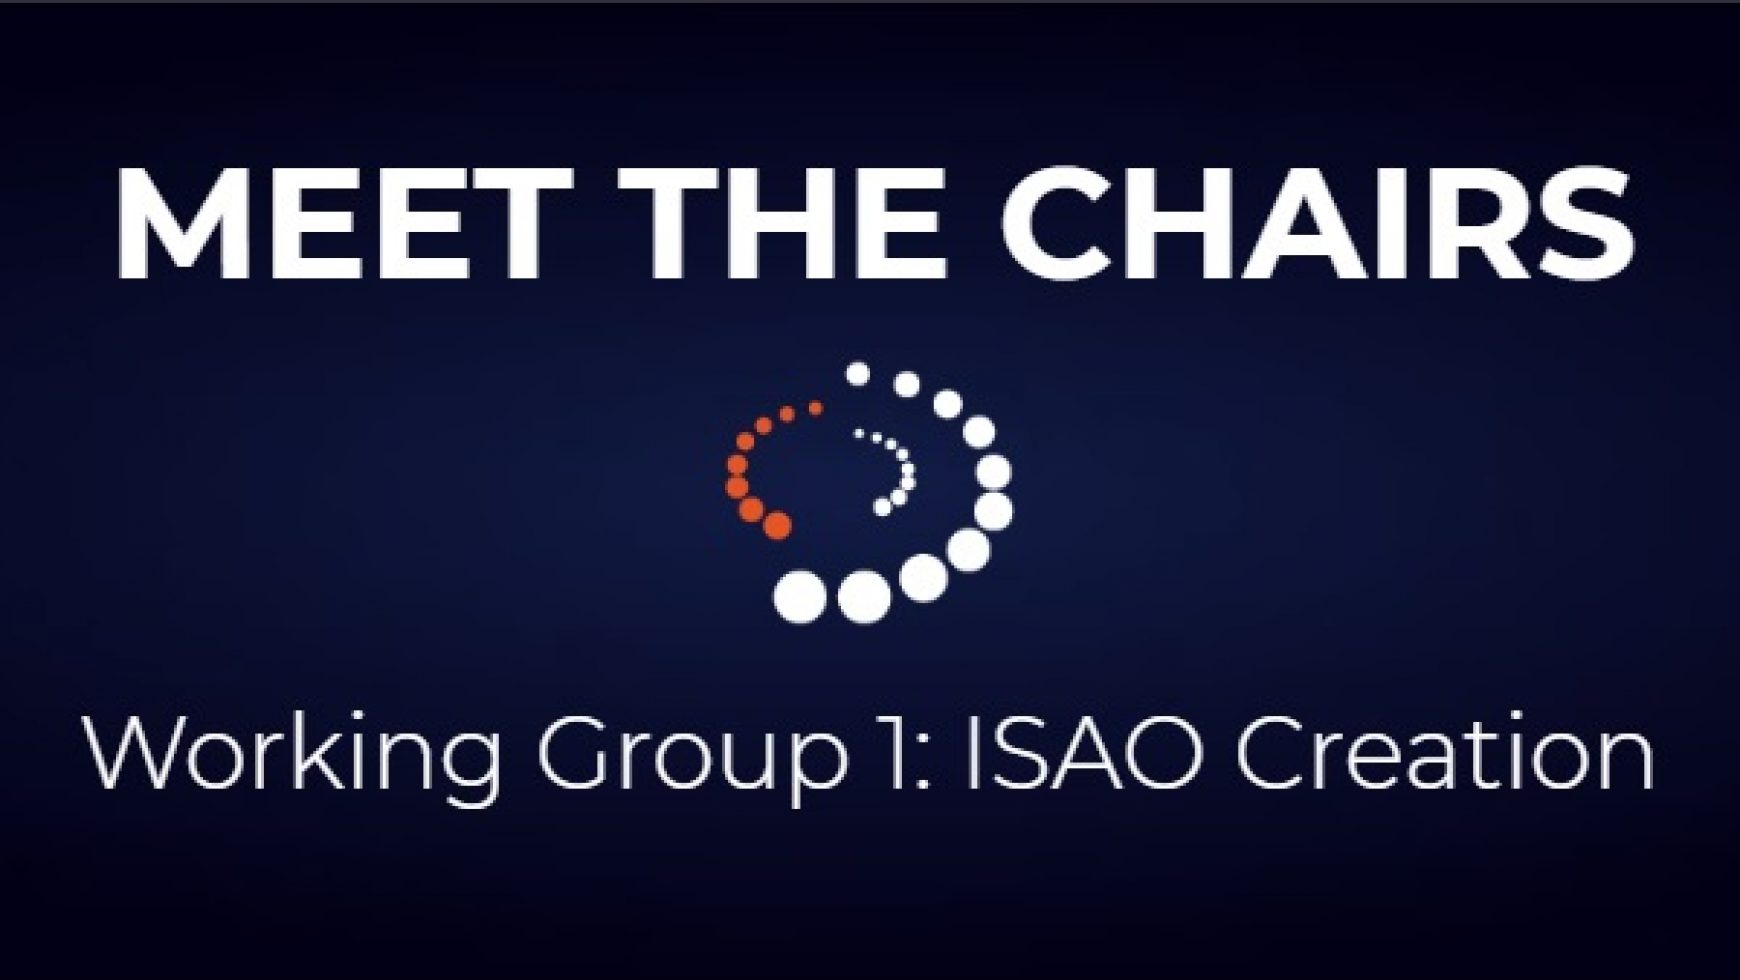 Meet the Chairs: Working Group 1 ISAO Creation